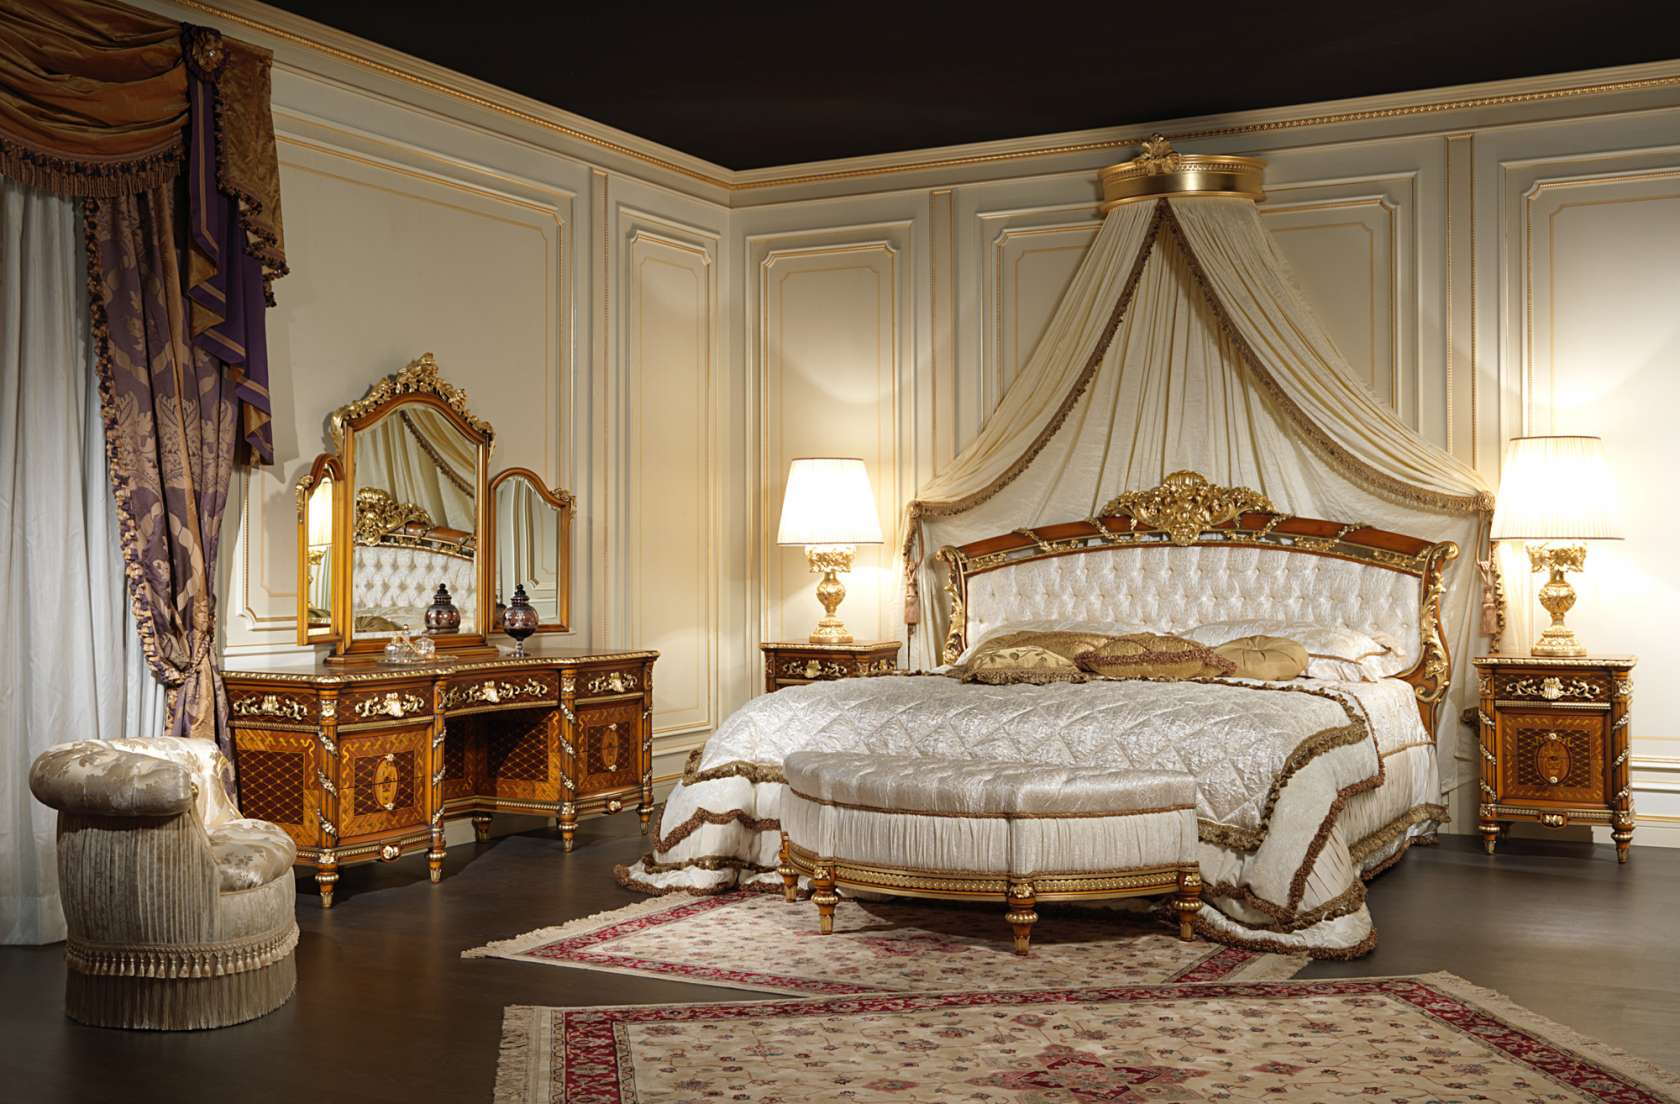 Louis xvi bedroom furniture -